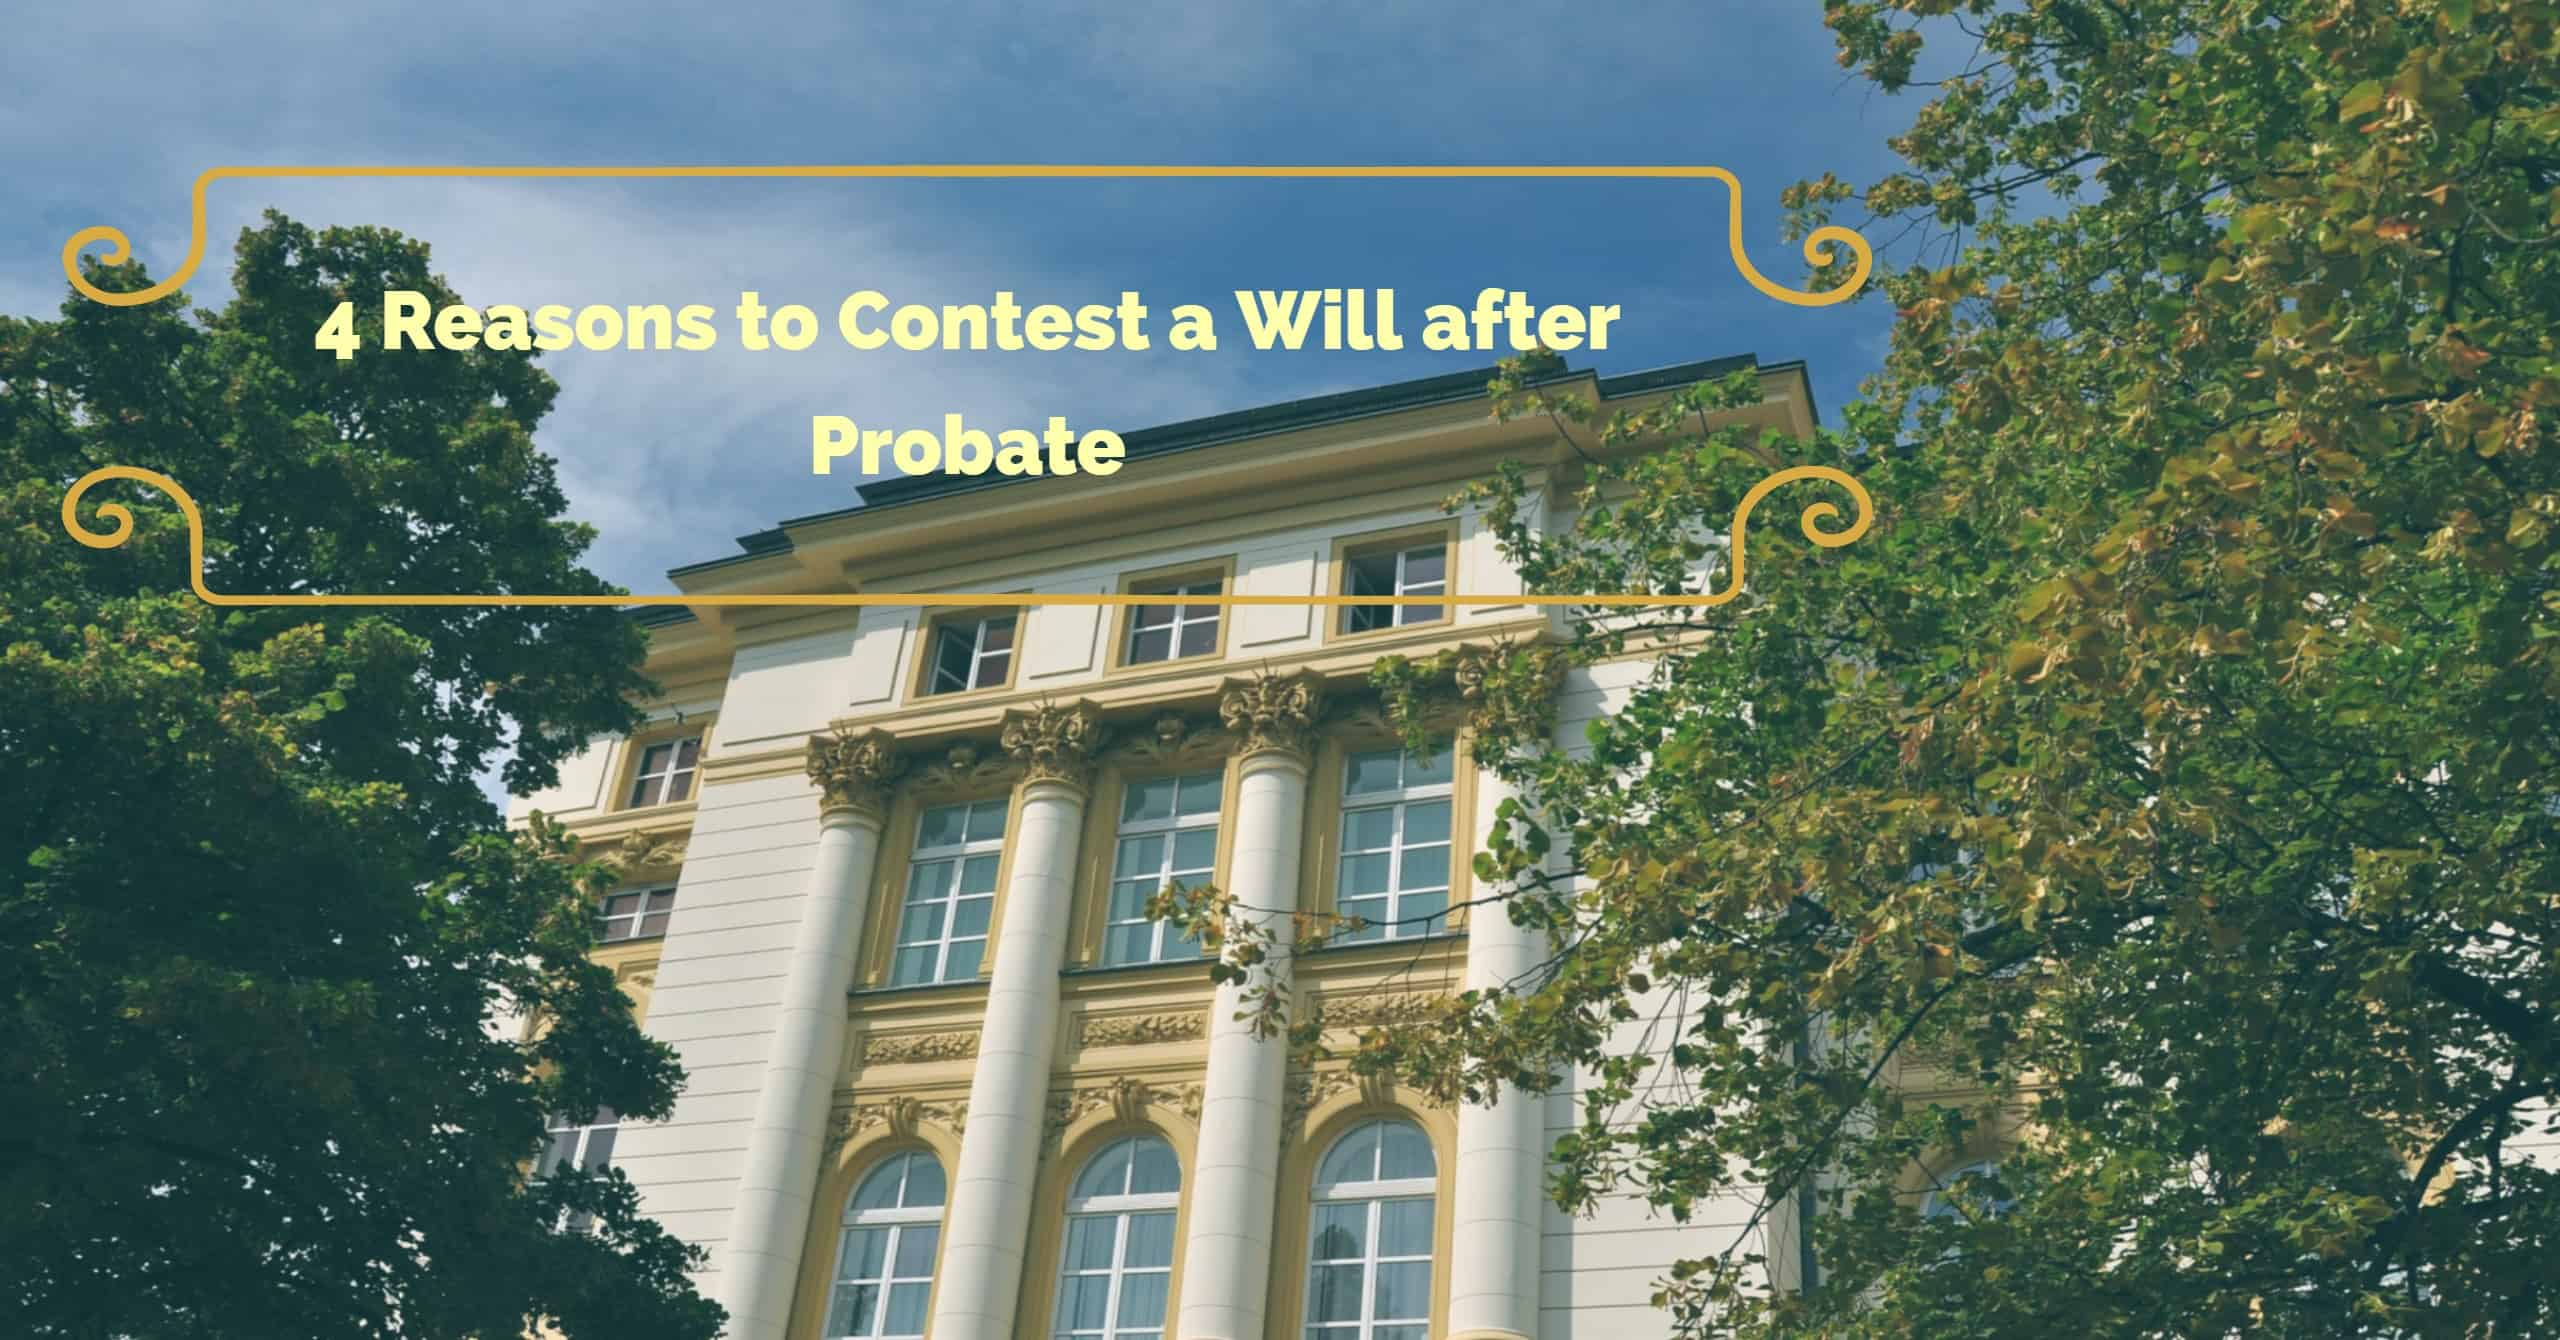 [Infographic] 4 Reasons to Contest a Will after Probate